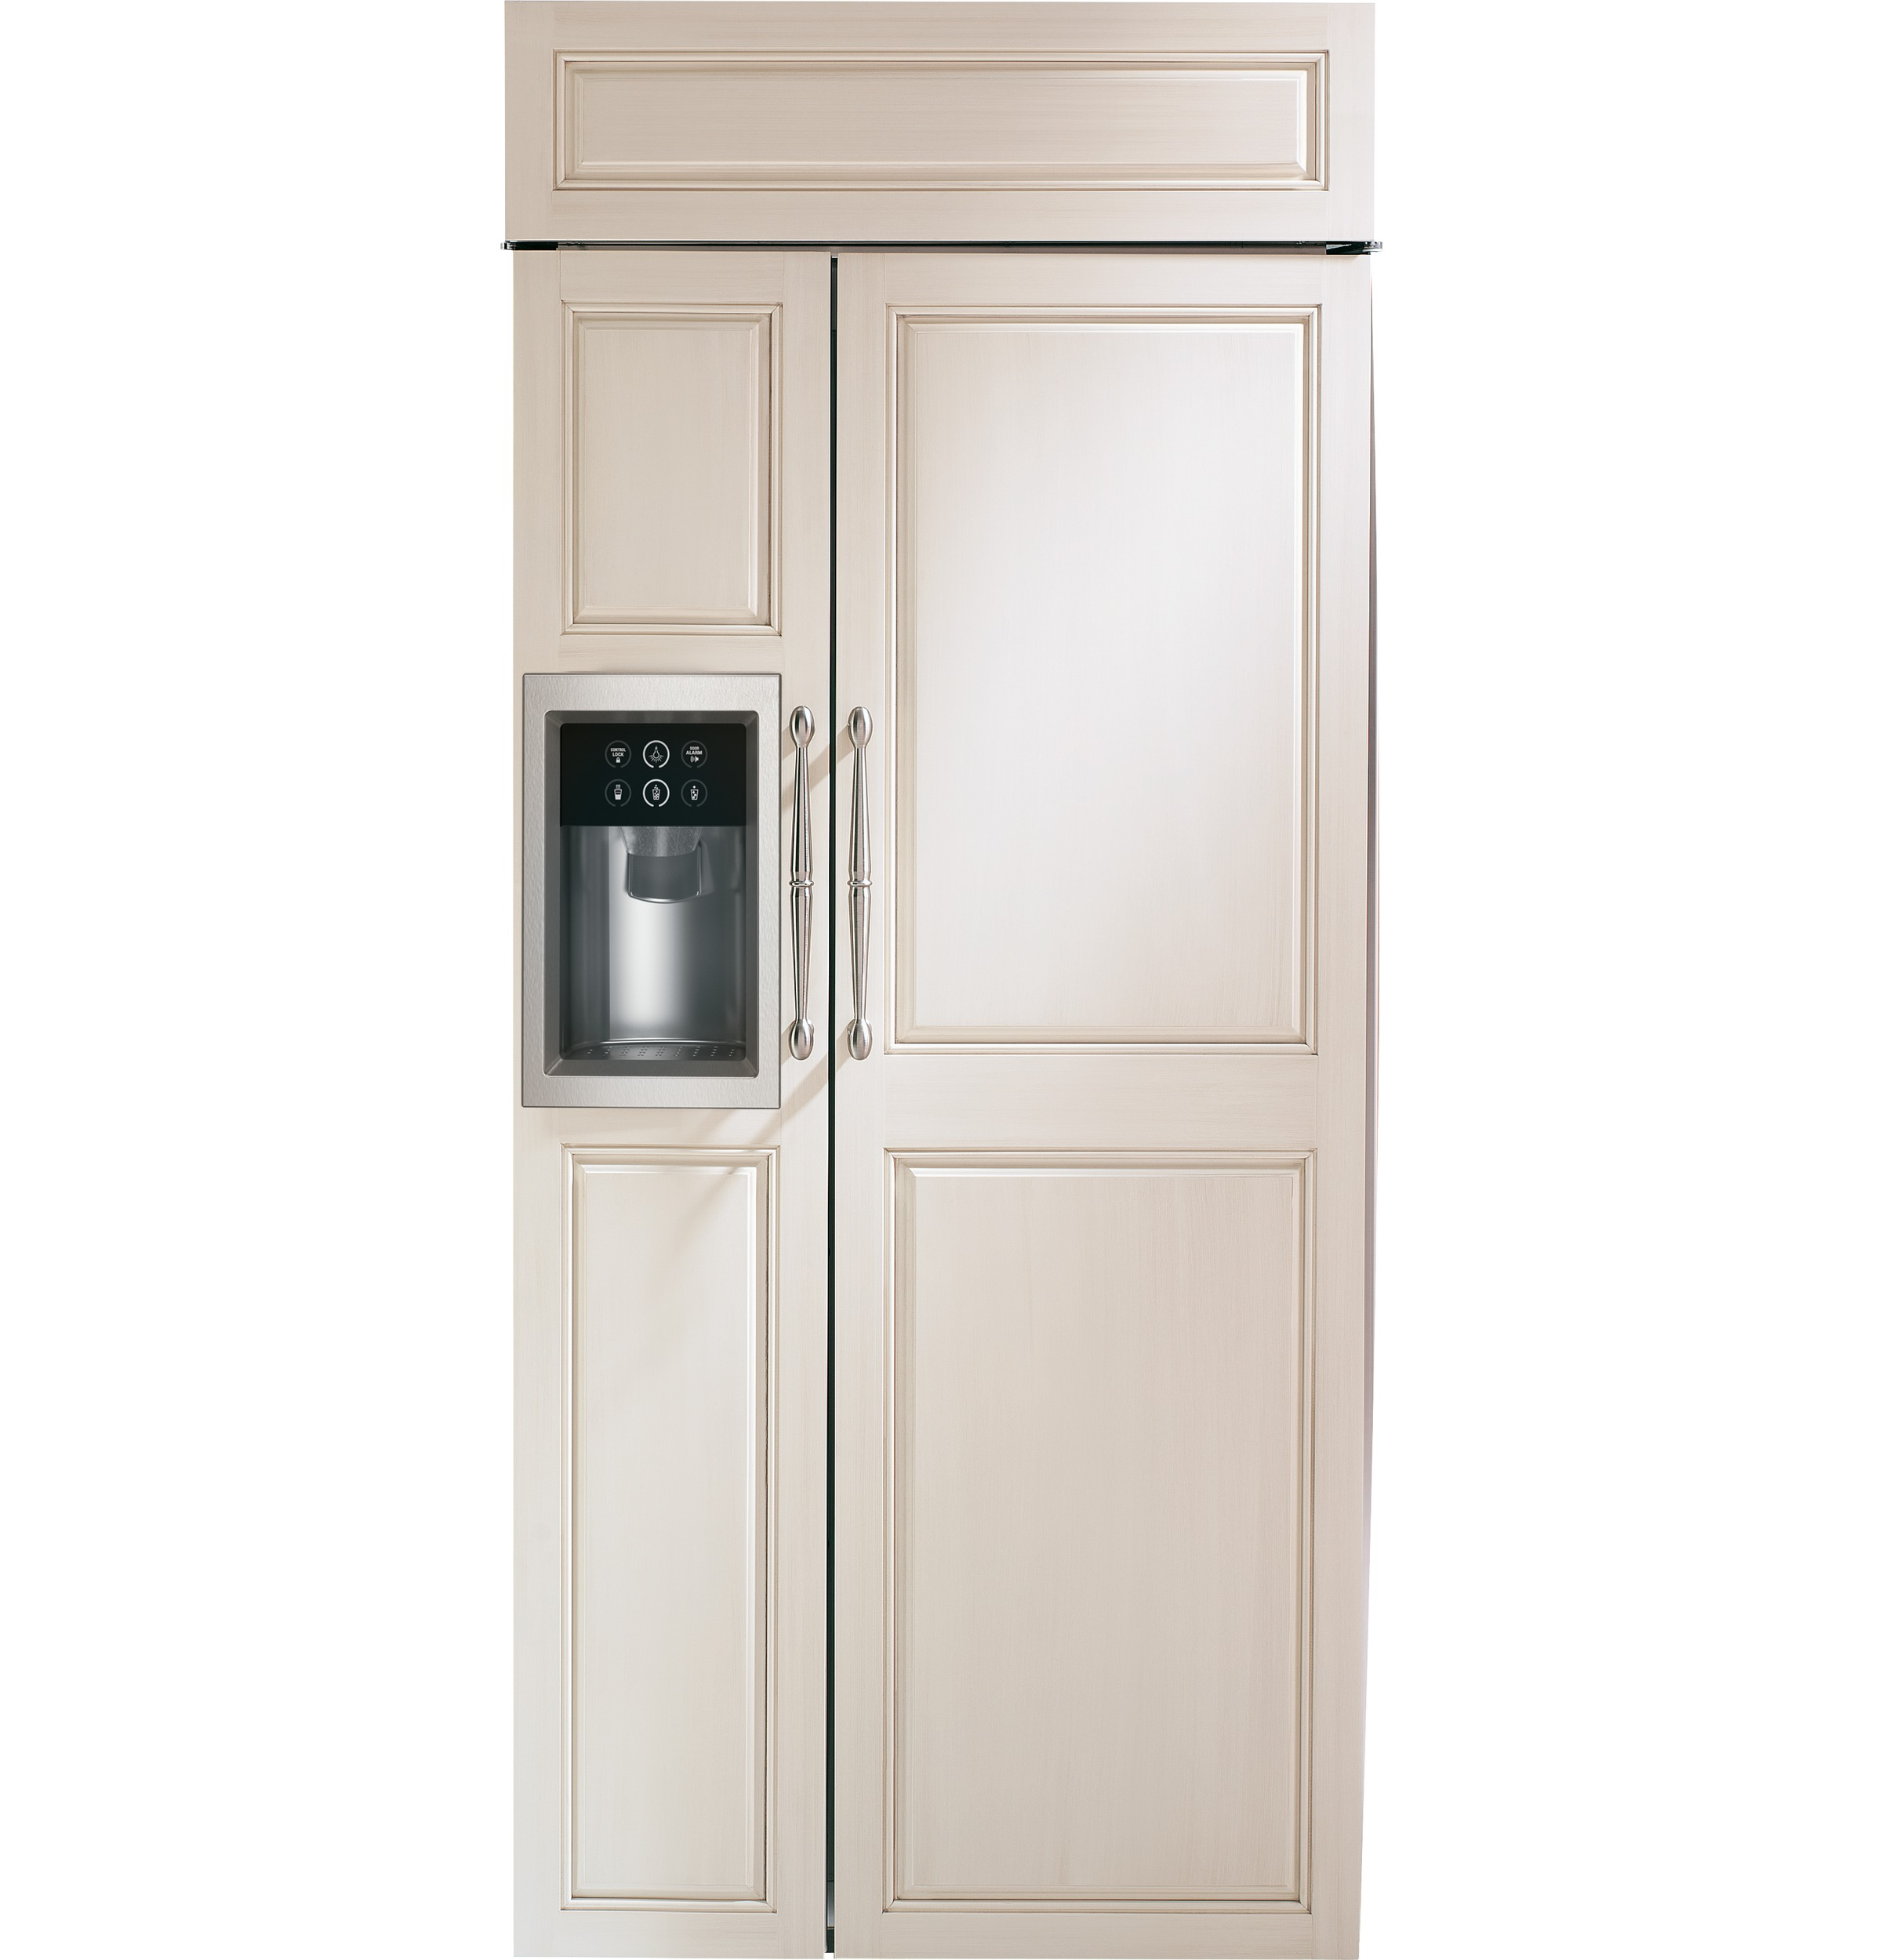 Monogram 174 36 Quot Built In Side By Side Refrigerator With